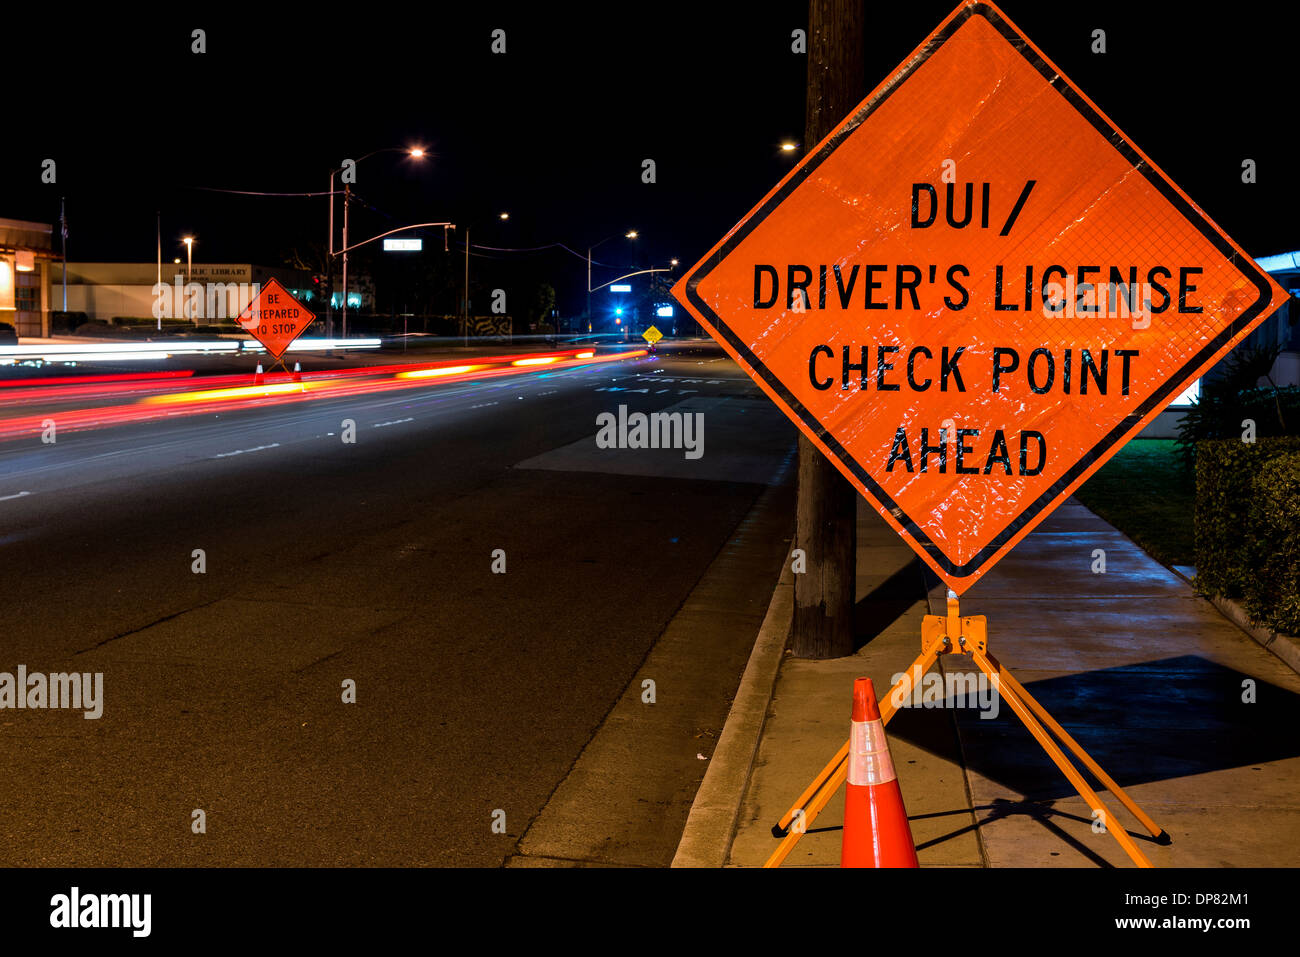 A DUI check point in Anaheim, CA. Stock Photo